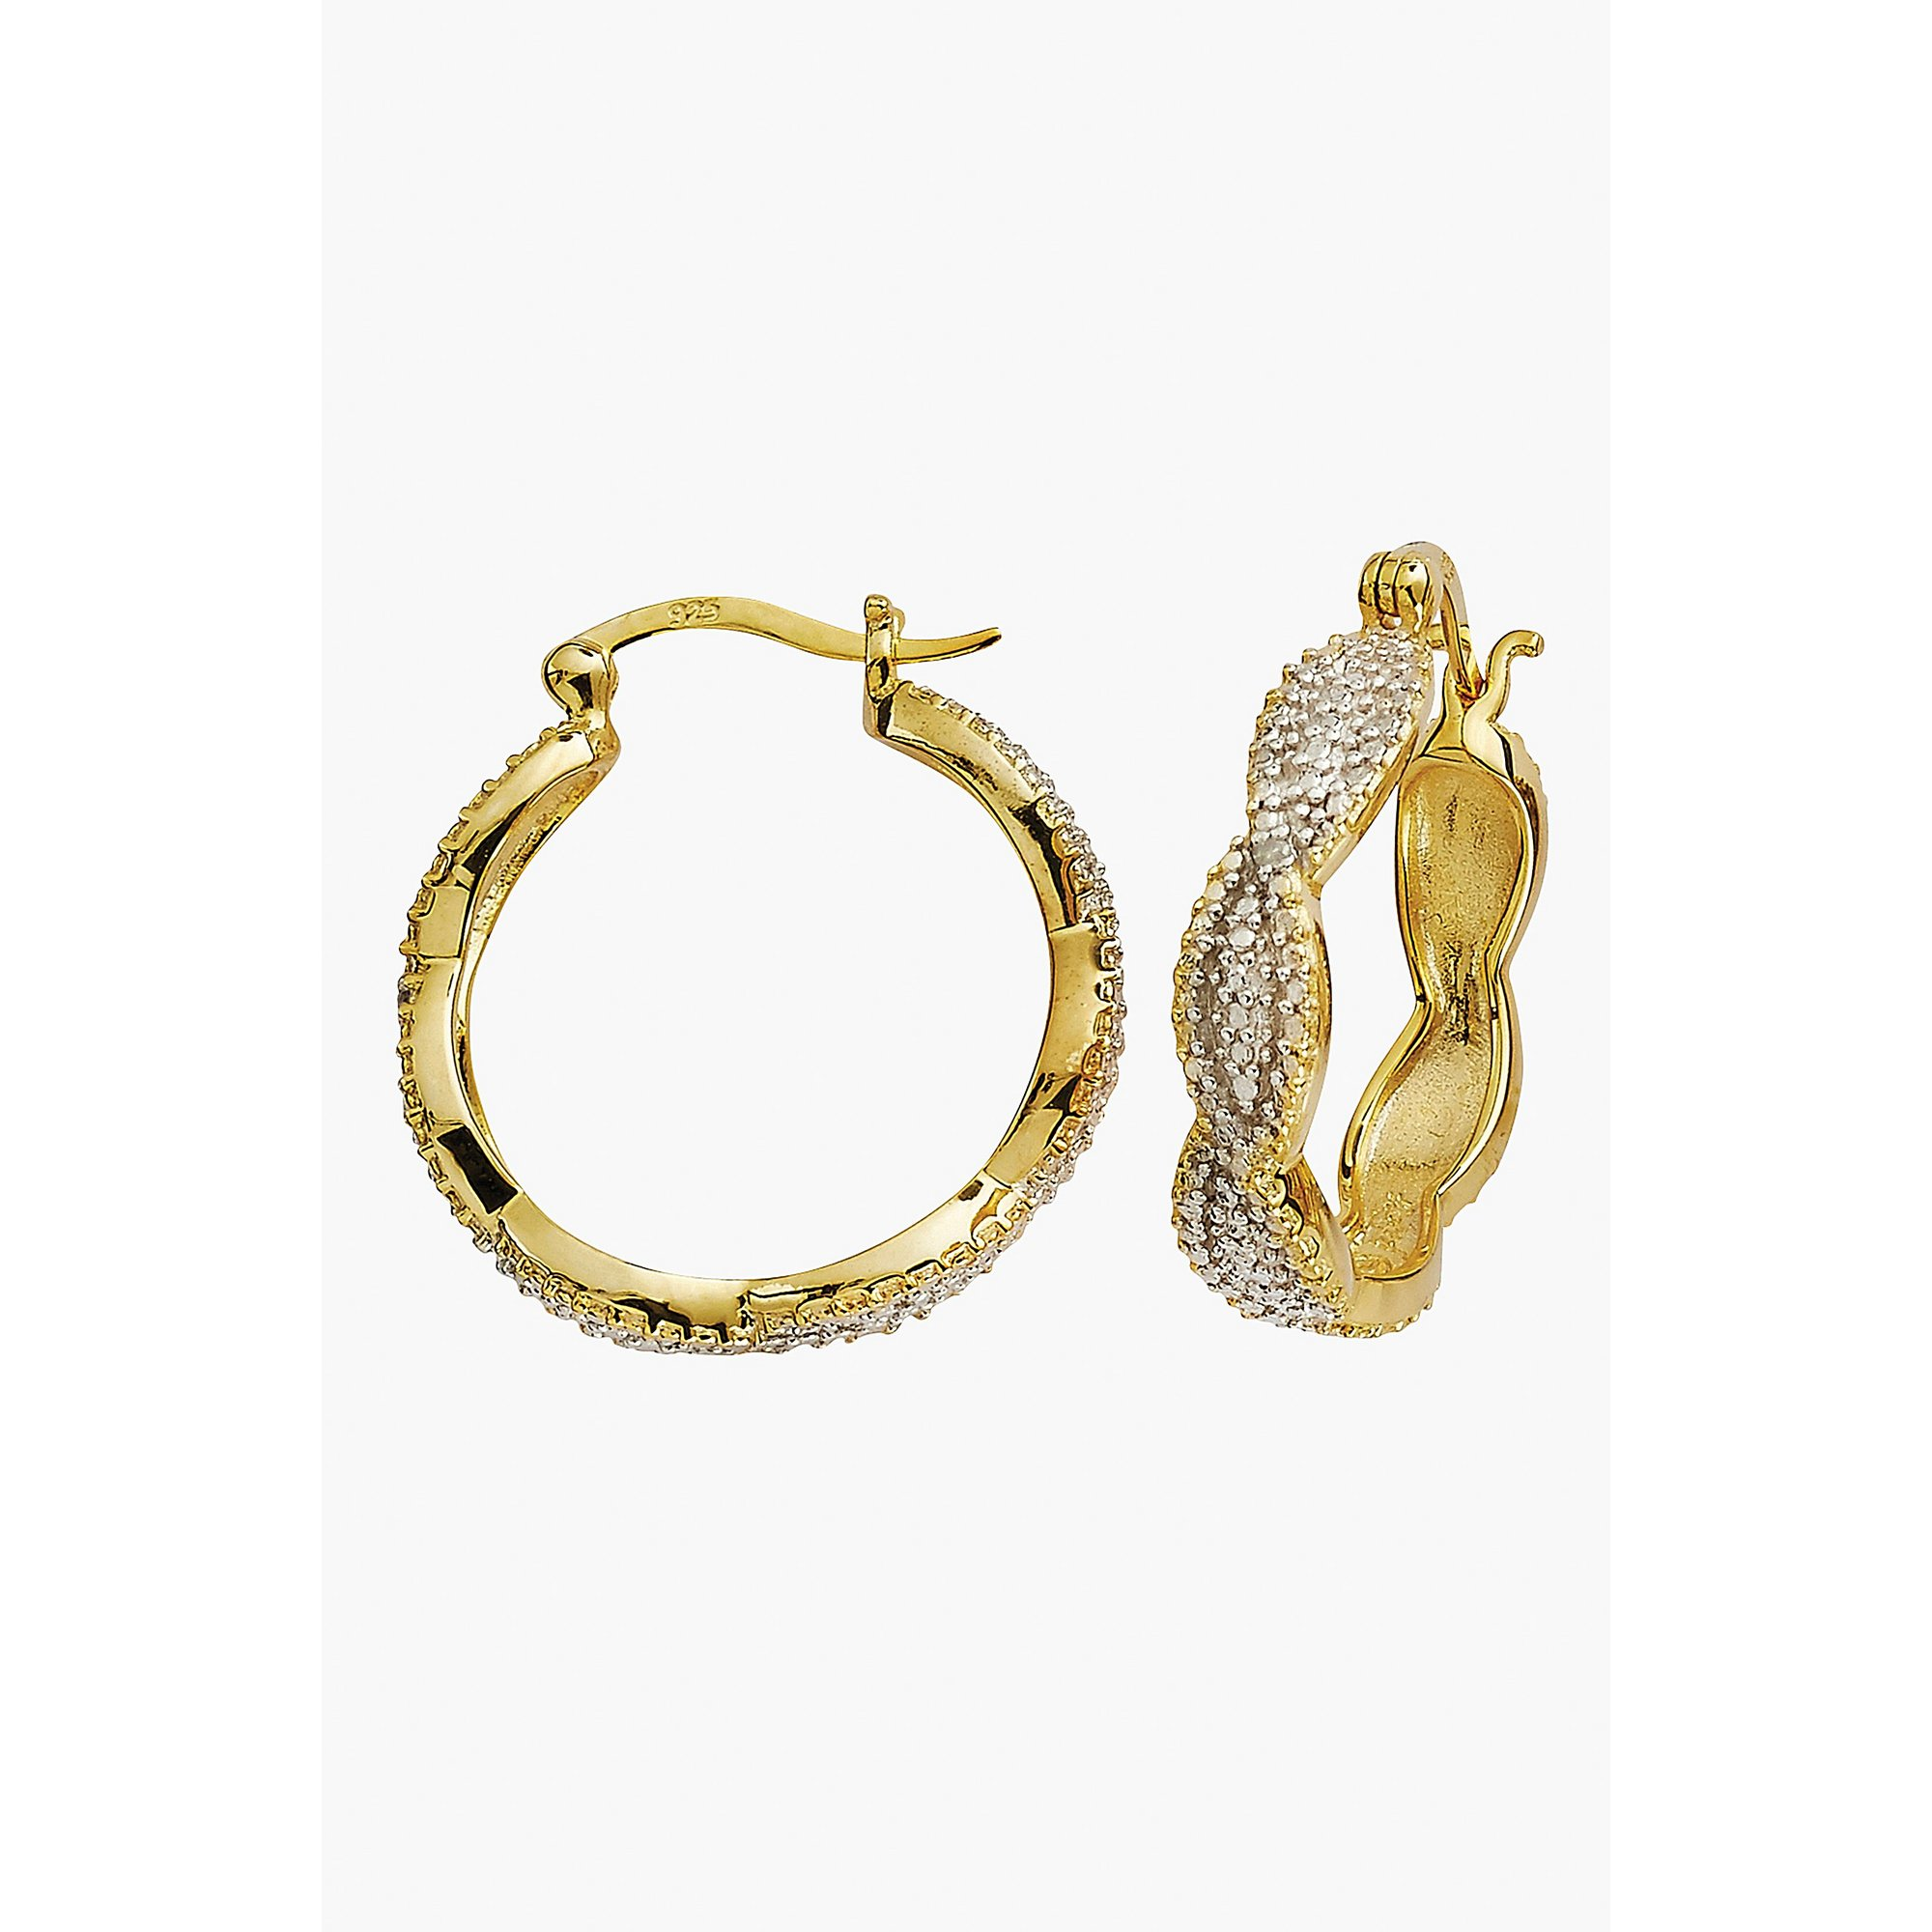 Image of Diamond Cut Gold Plated Hoop Earrings